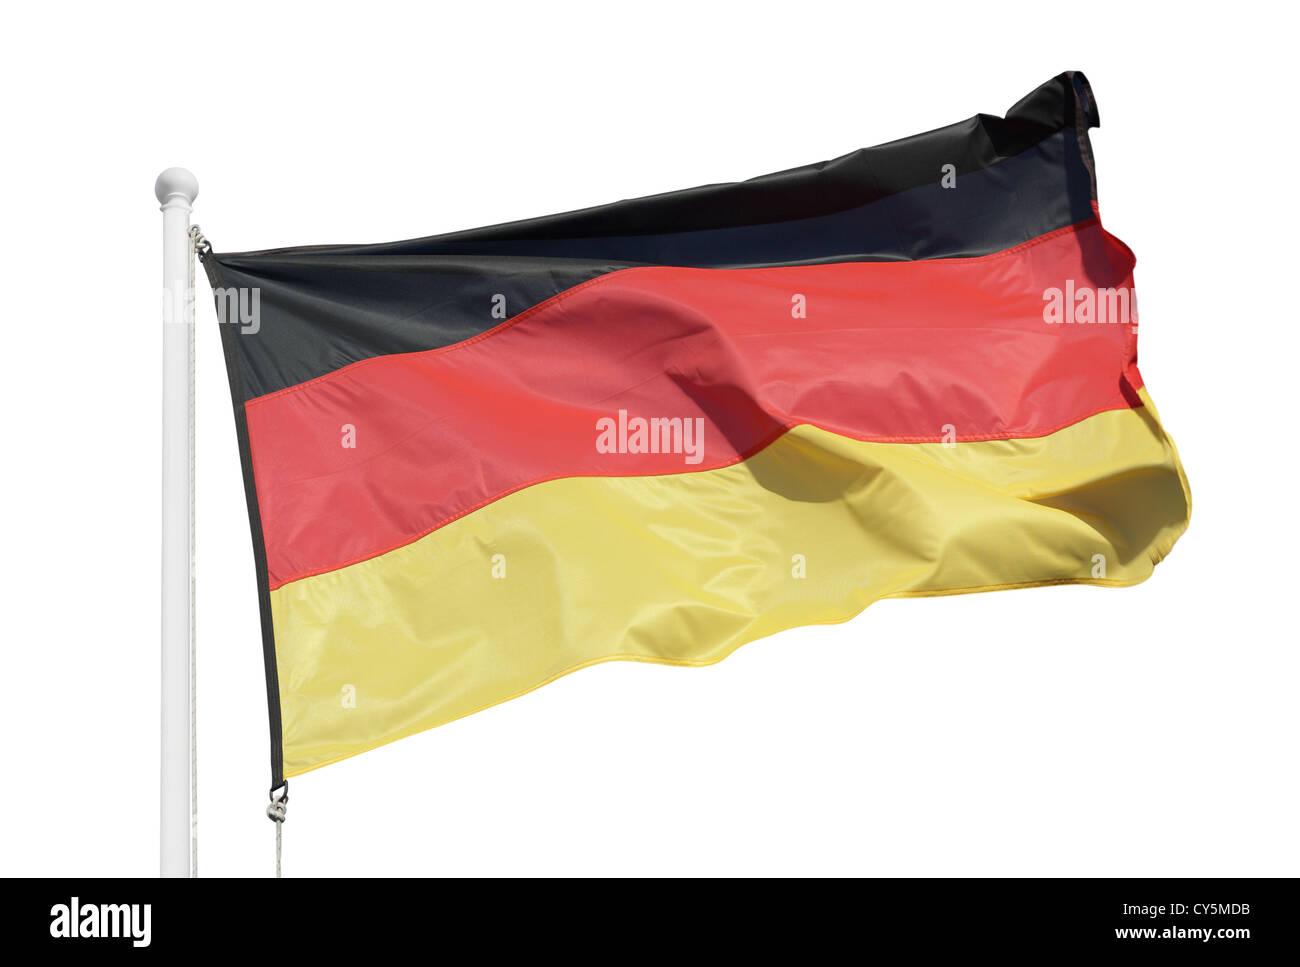 Germany flag blowing in the wind - Stock Image